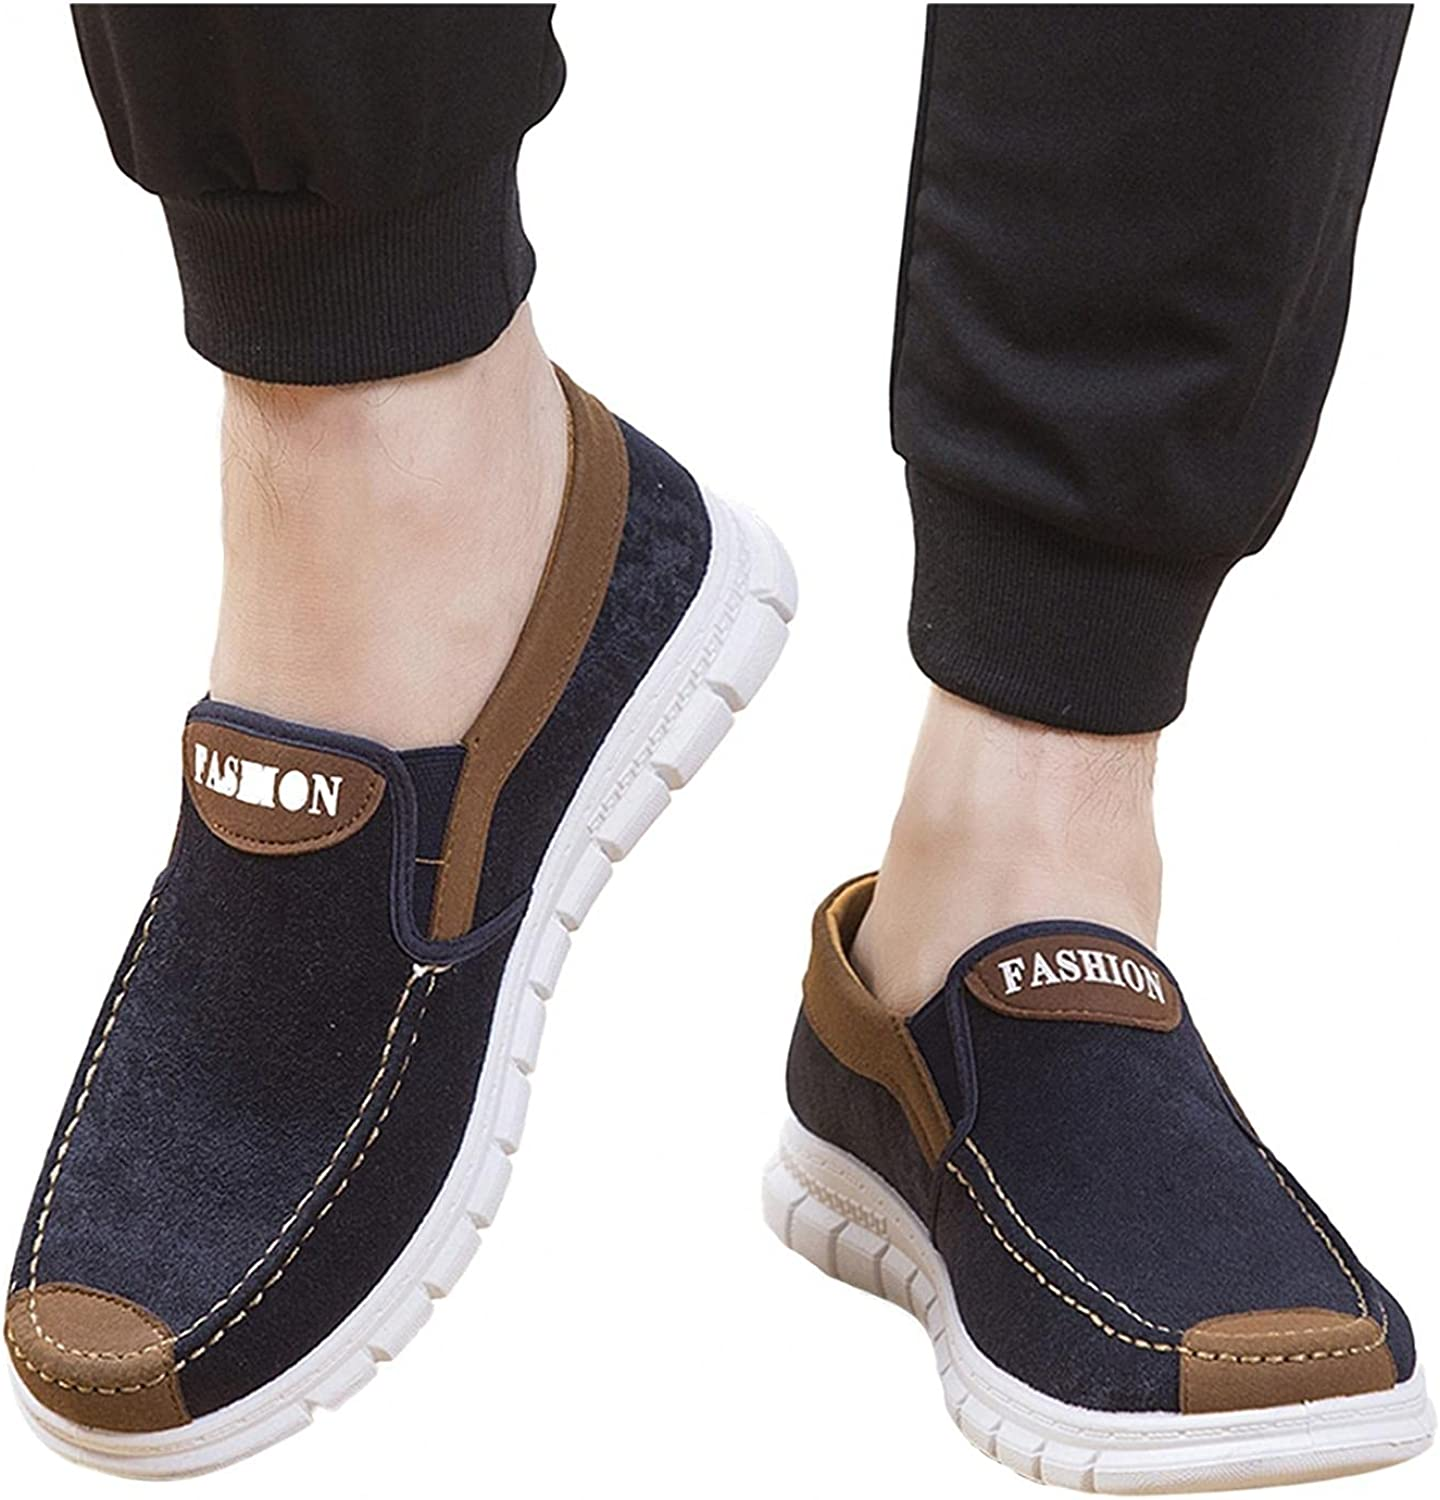 Hbeylia Men's Slip On Loafers Walking Shoes Fashion Casual Classic Driving Shoes Breathable Comfort Flats Sneakers Boat Shoes For Men Males Business Office Work Sports